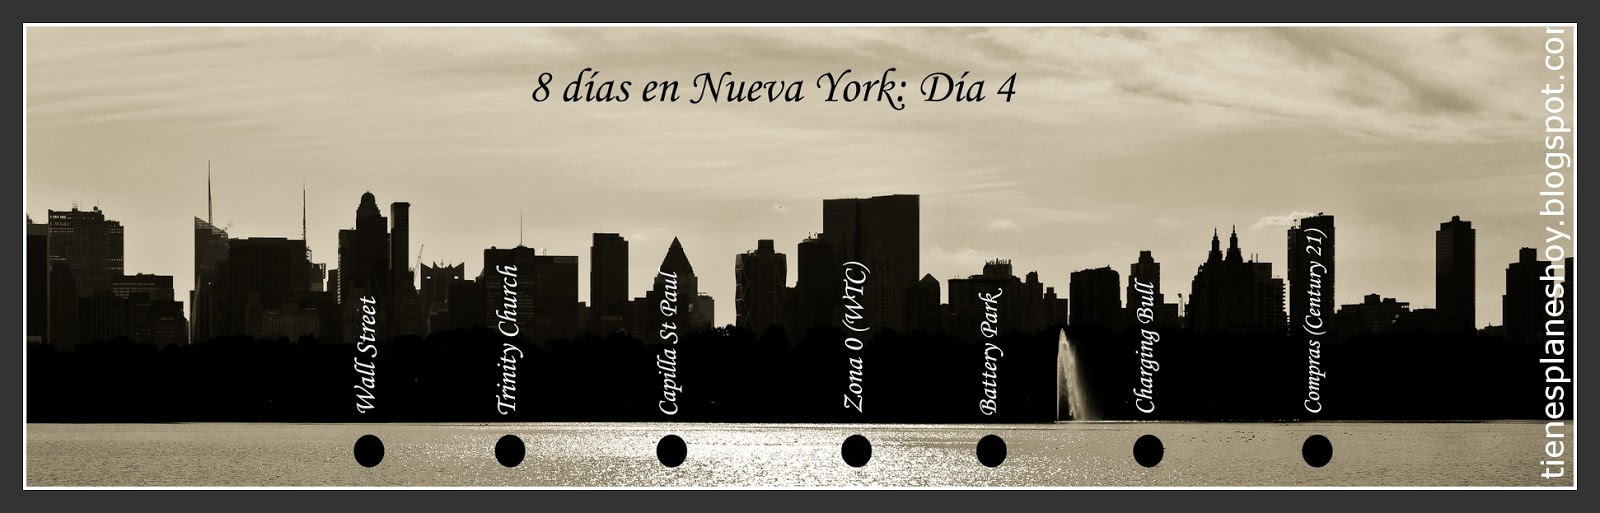 Bolsa De New York Hoy Cafe